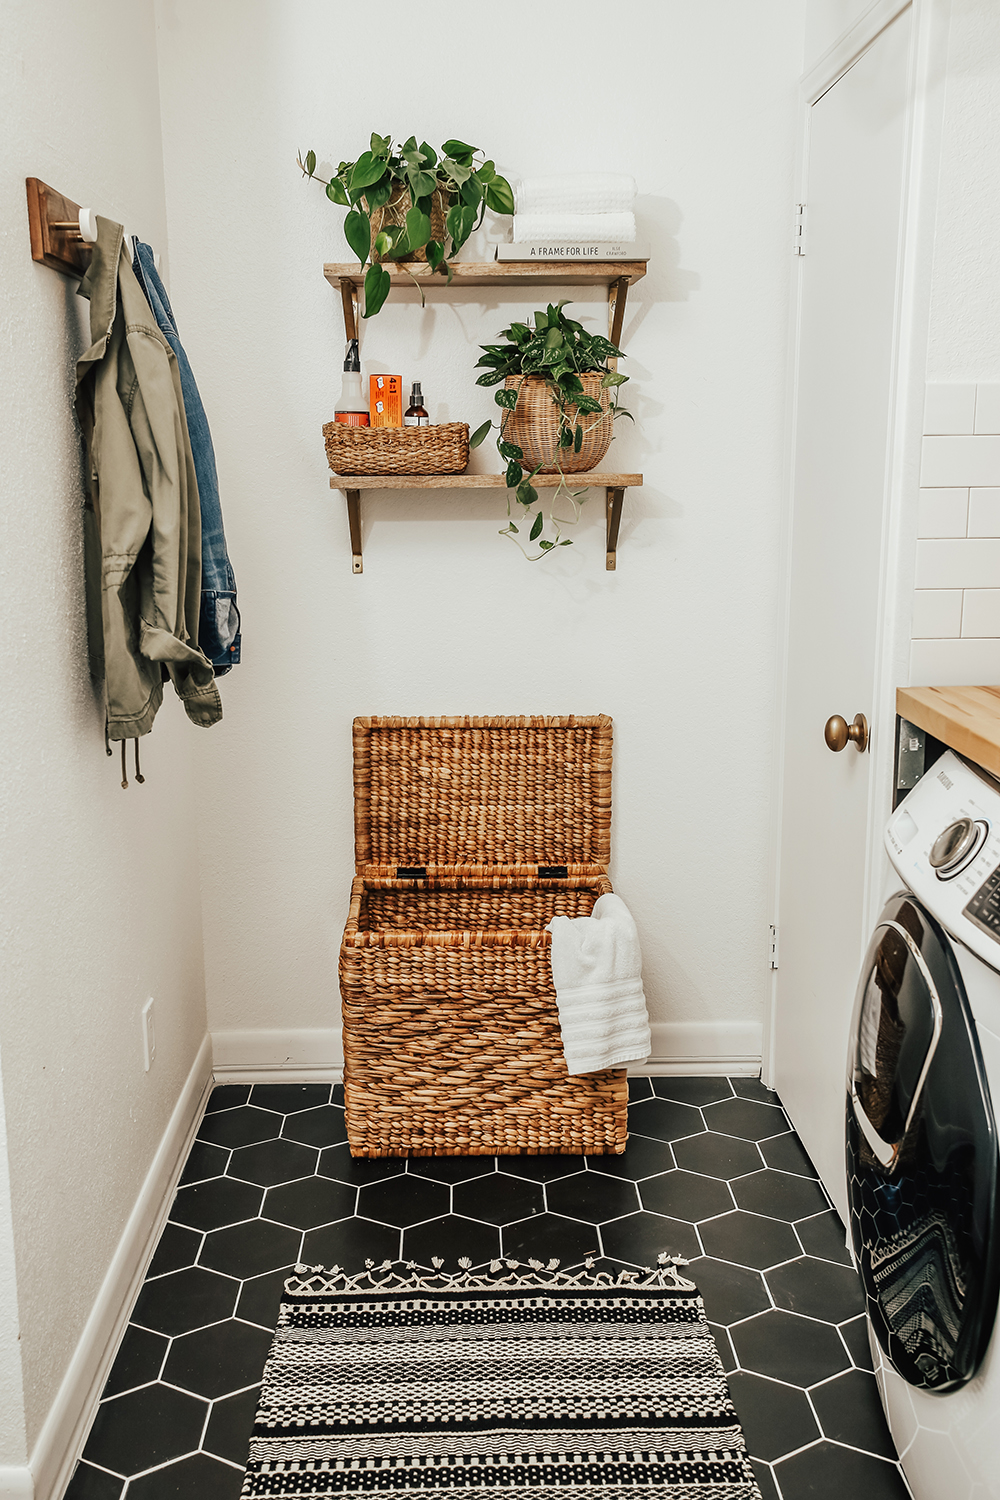 livvyland-blog-olivia-watson-home-decor-interior-design-before-after-laundry-room-makeover-renovation-update-11